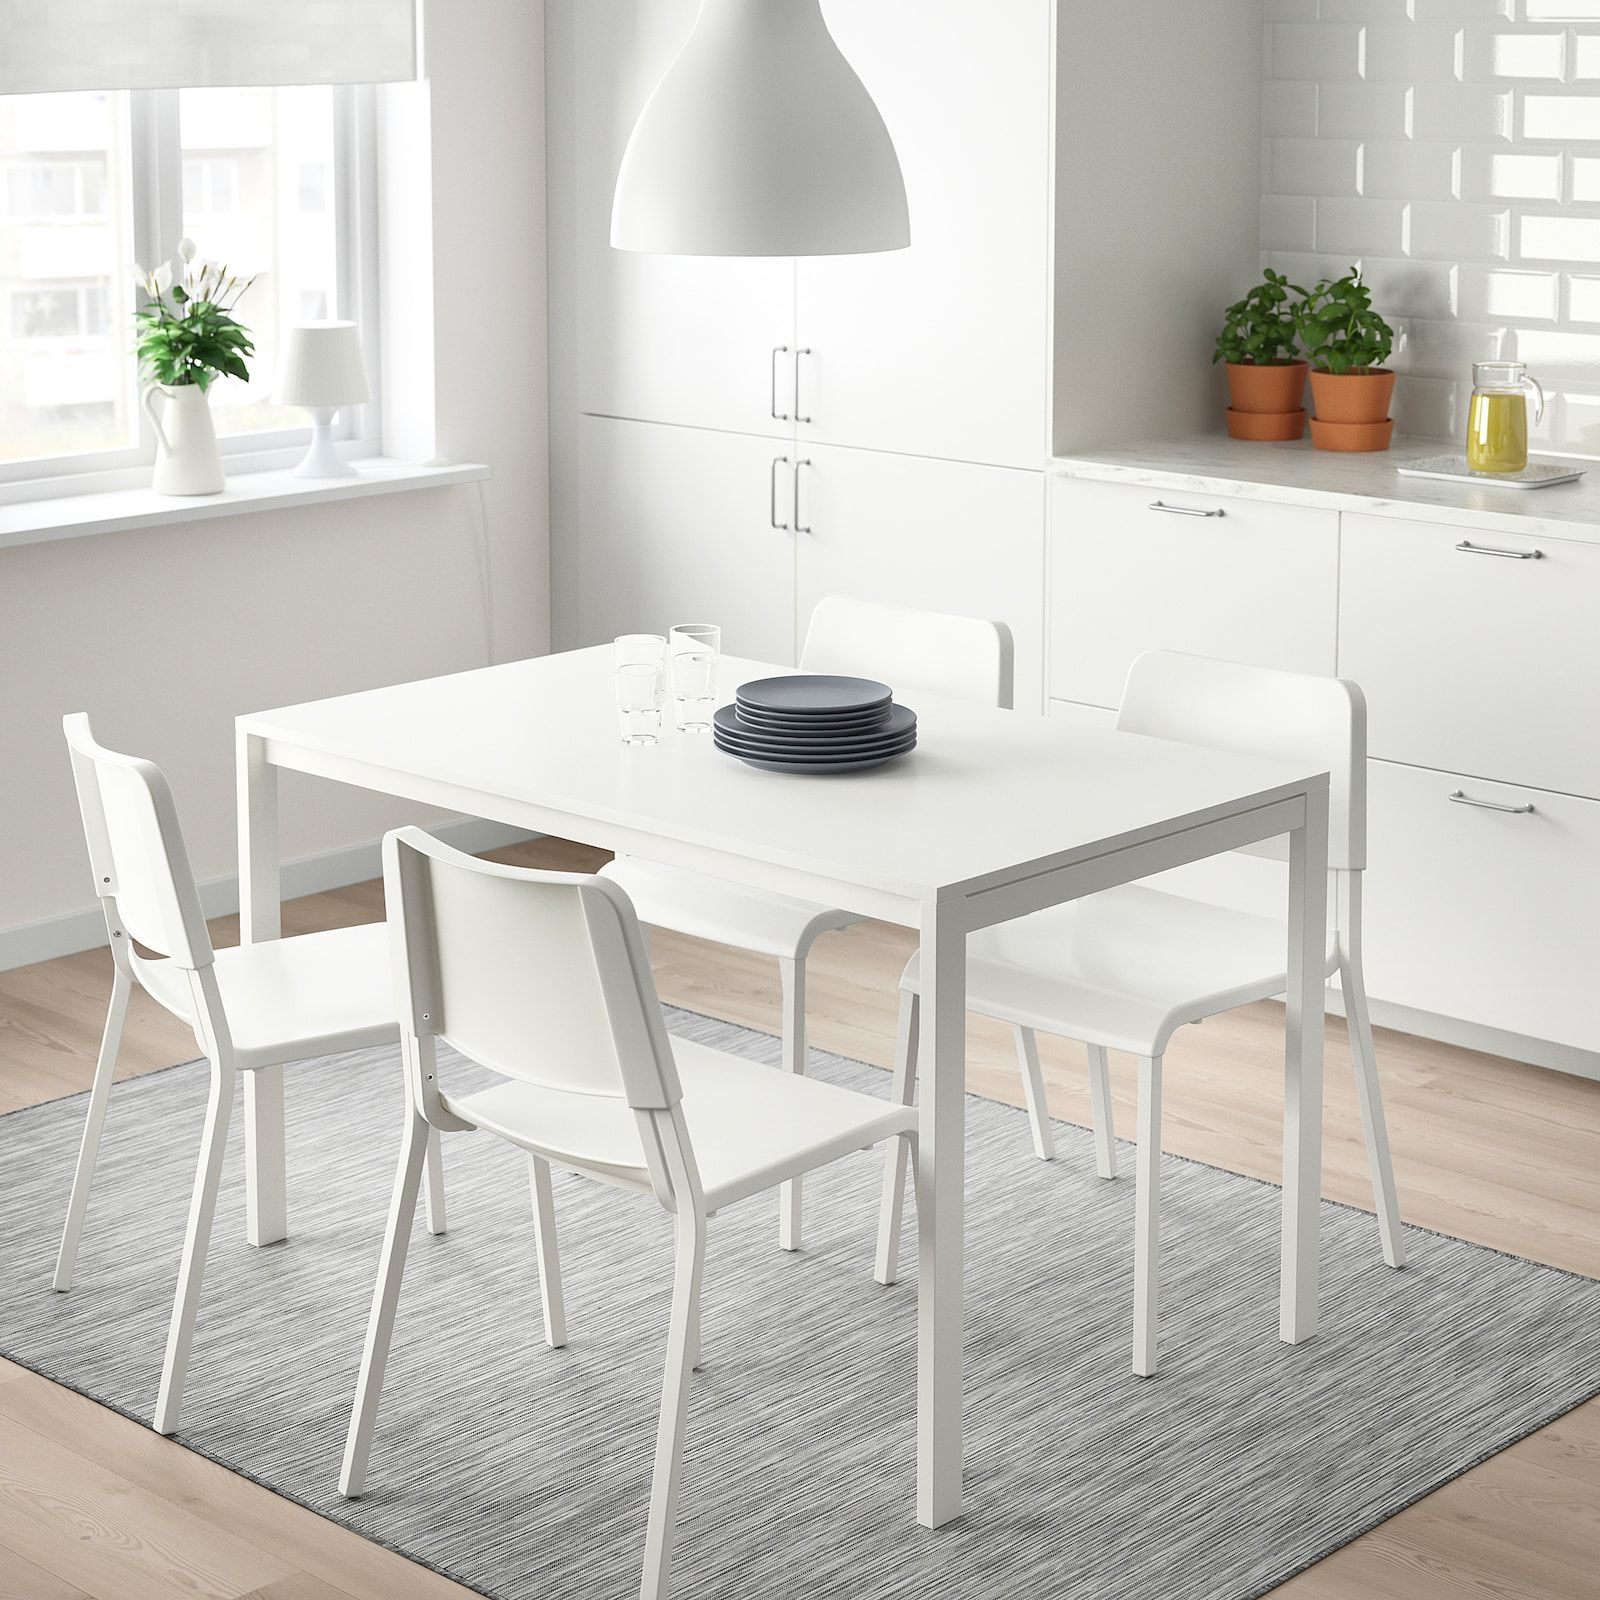 Melltorp Table White 49 1 4x29 1 2 Ikea In 2020 Dining Room